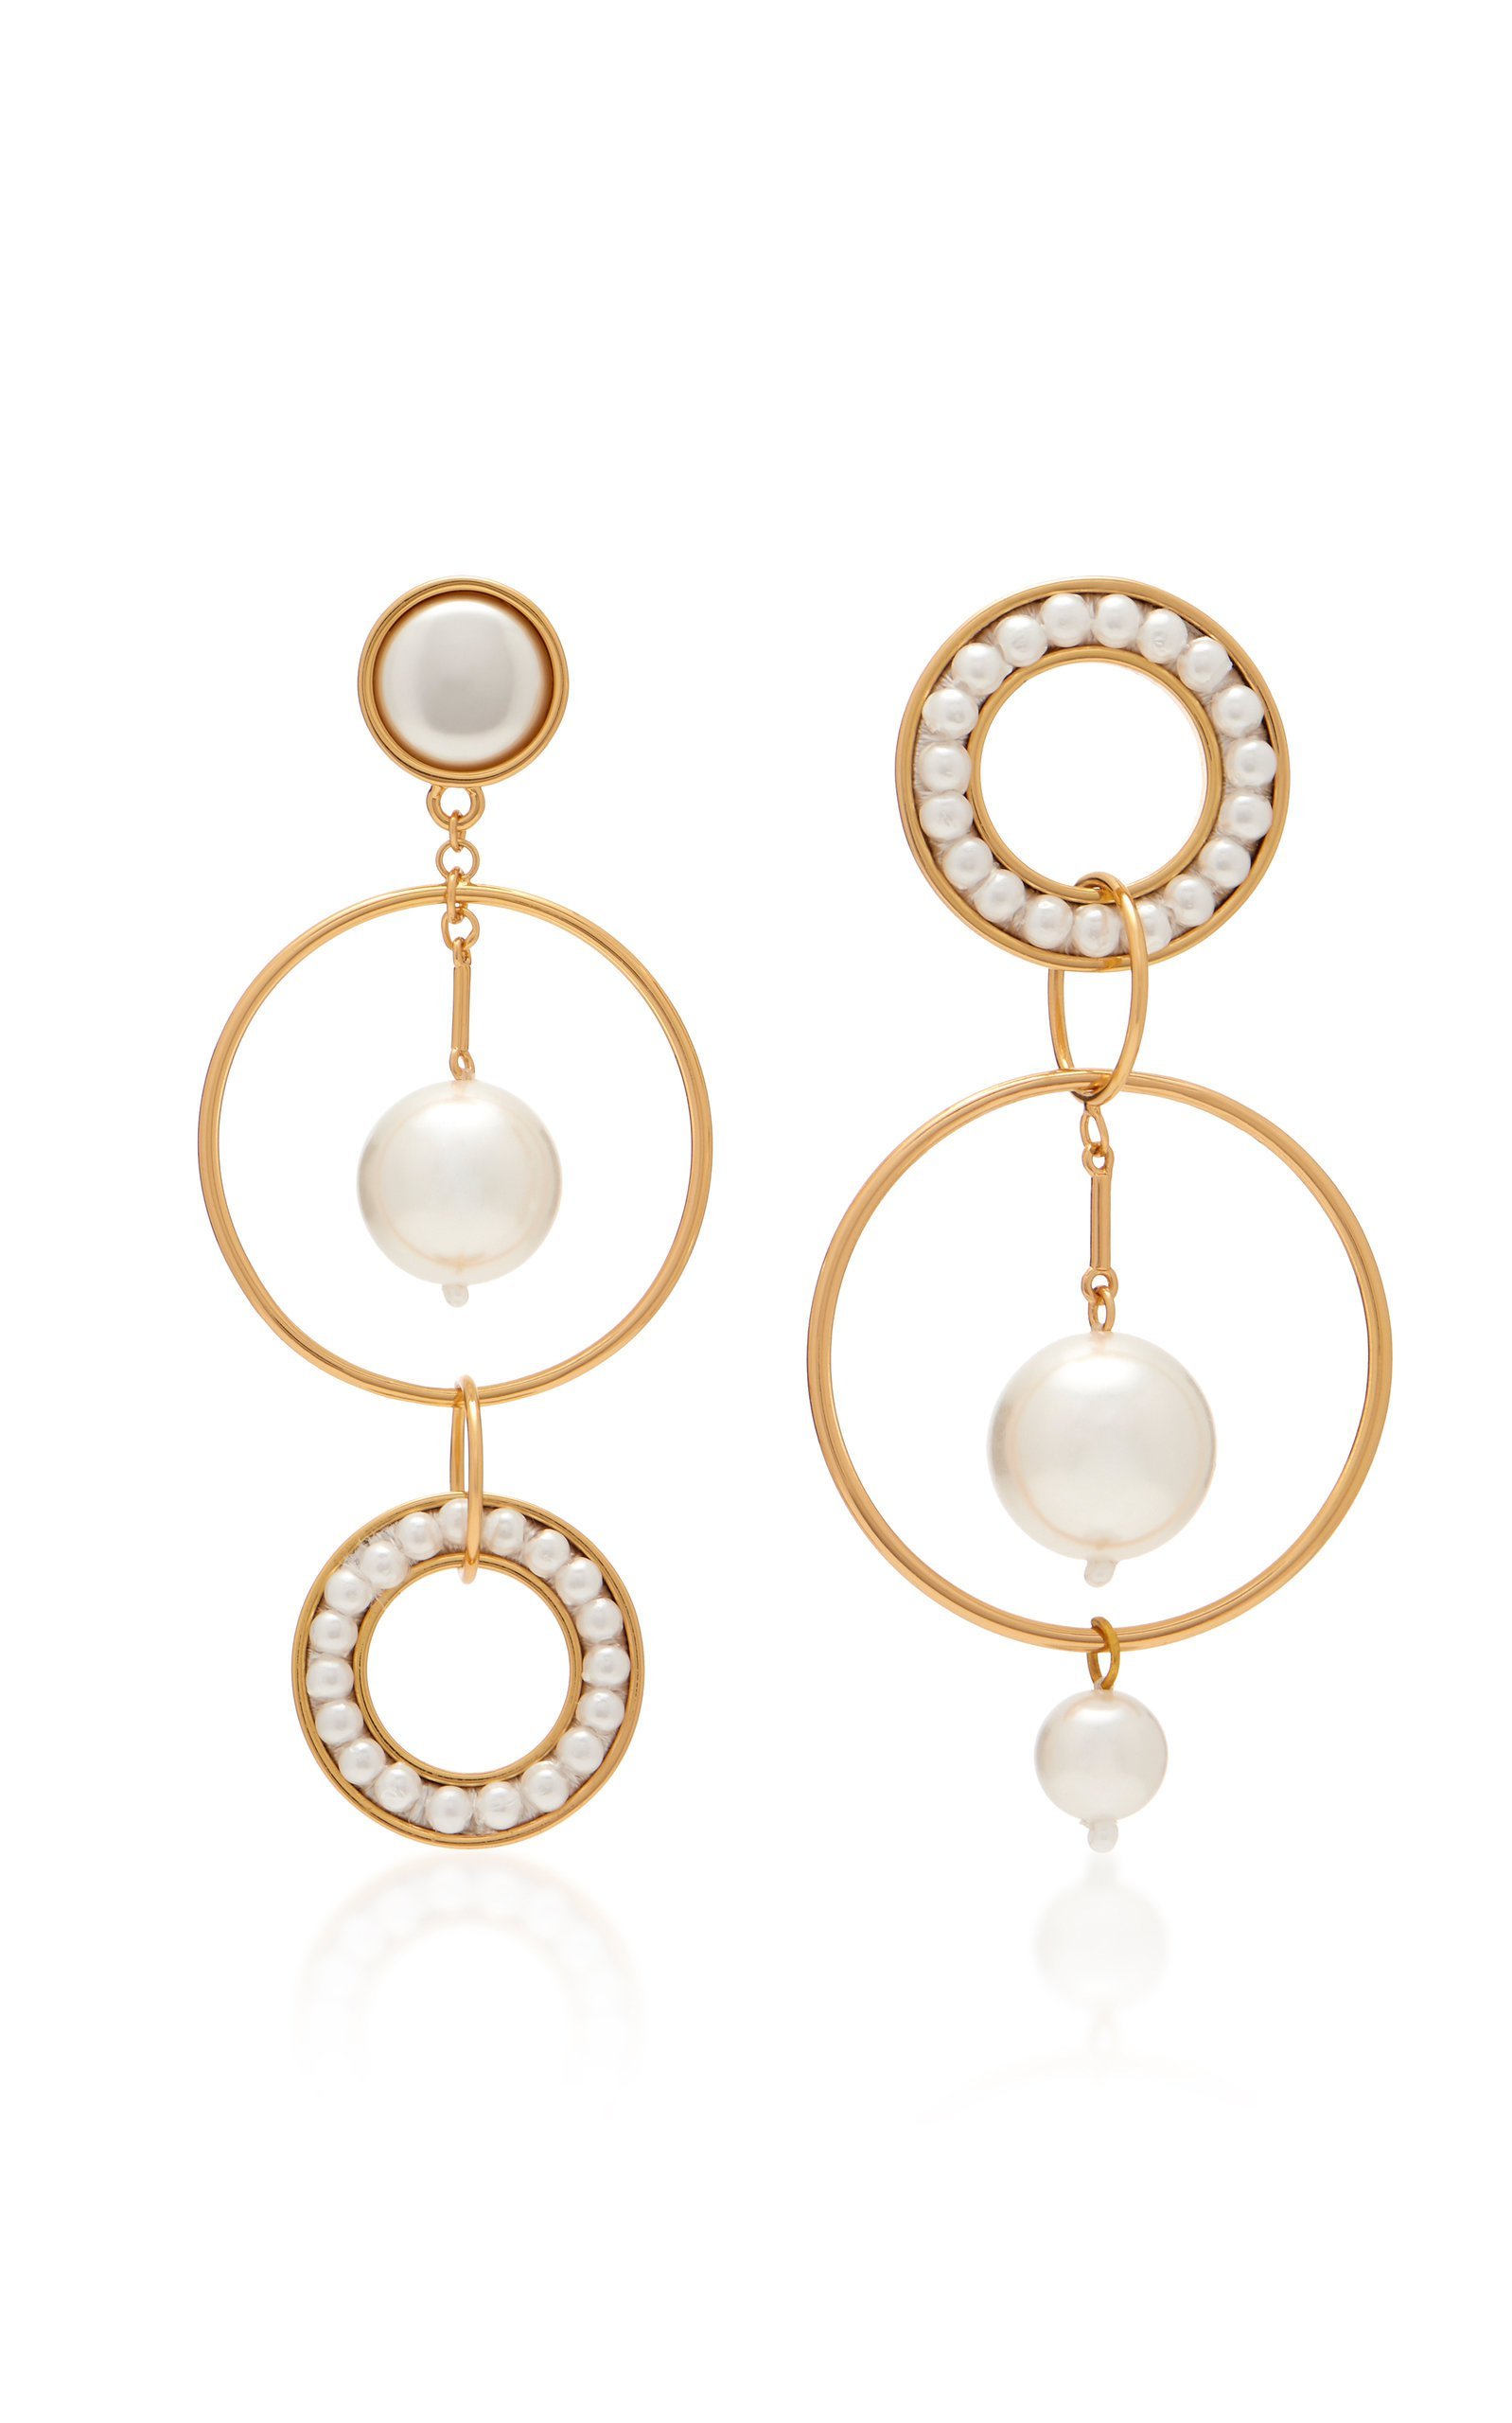 Mignonne Gavigan Mika Mismatched 18K Gold And Faux Pearl Earrings